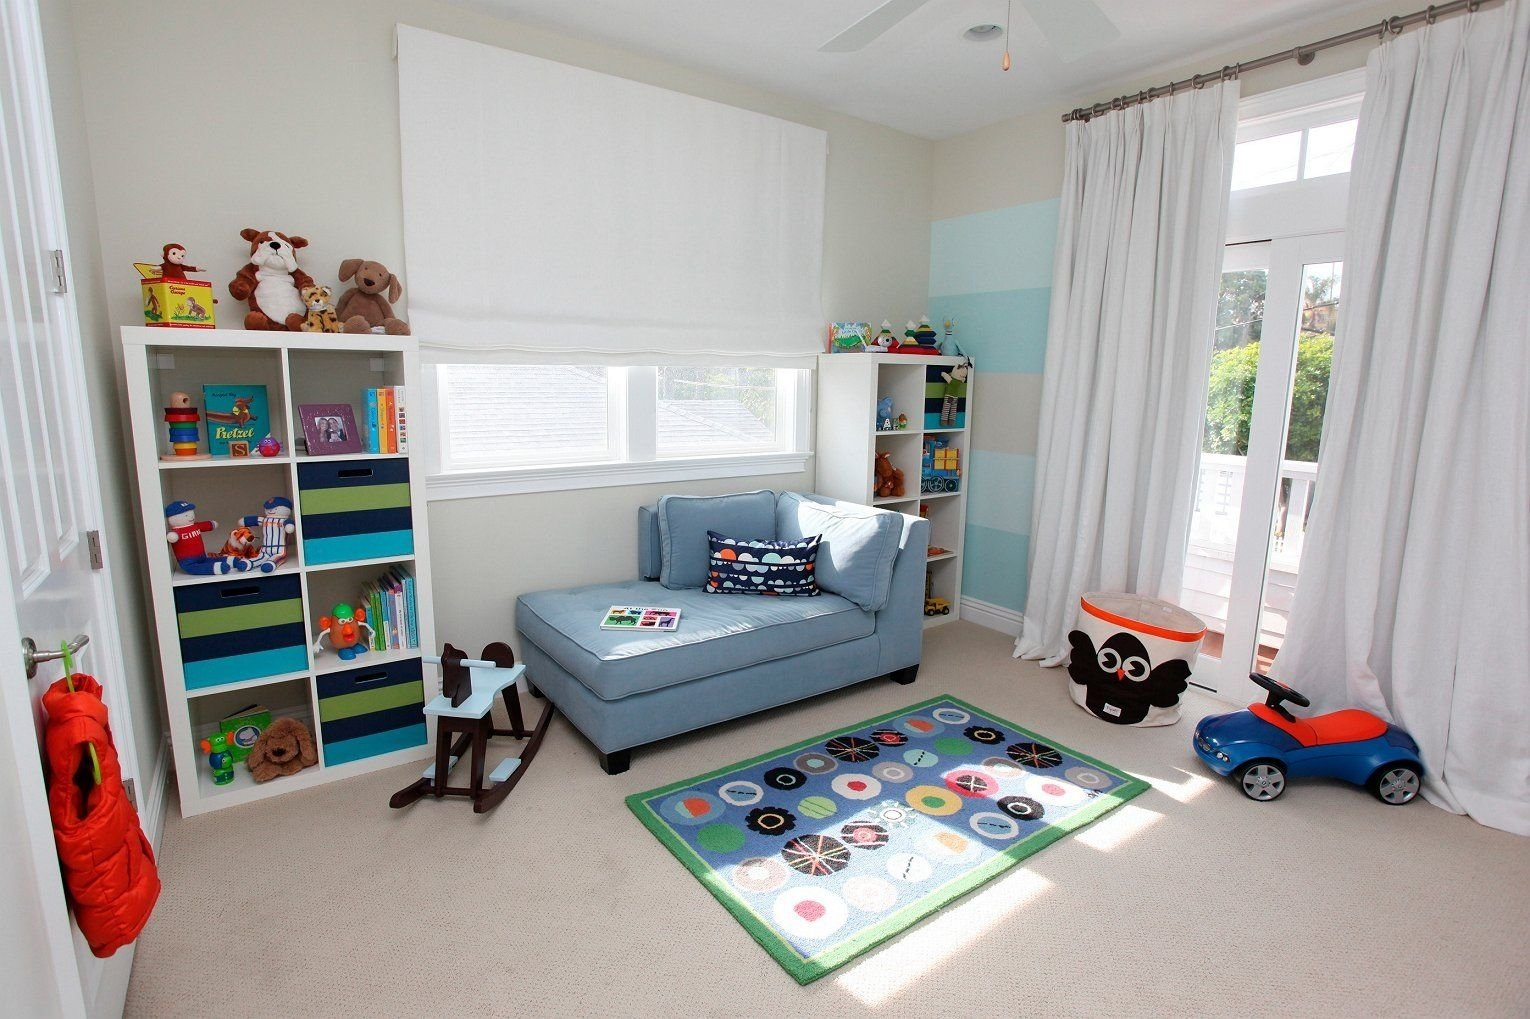 10 Nice Toddler Boy Room Decorating Ideas room decor toddler boys decorating ideas home dma homes 13540 2020